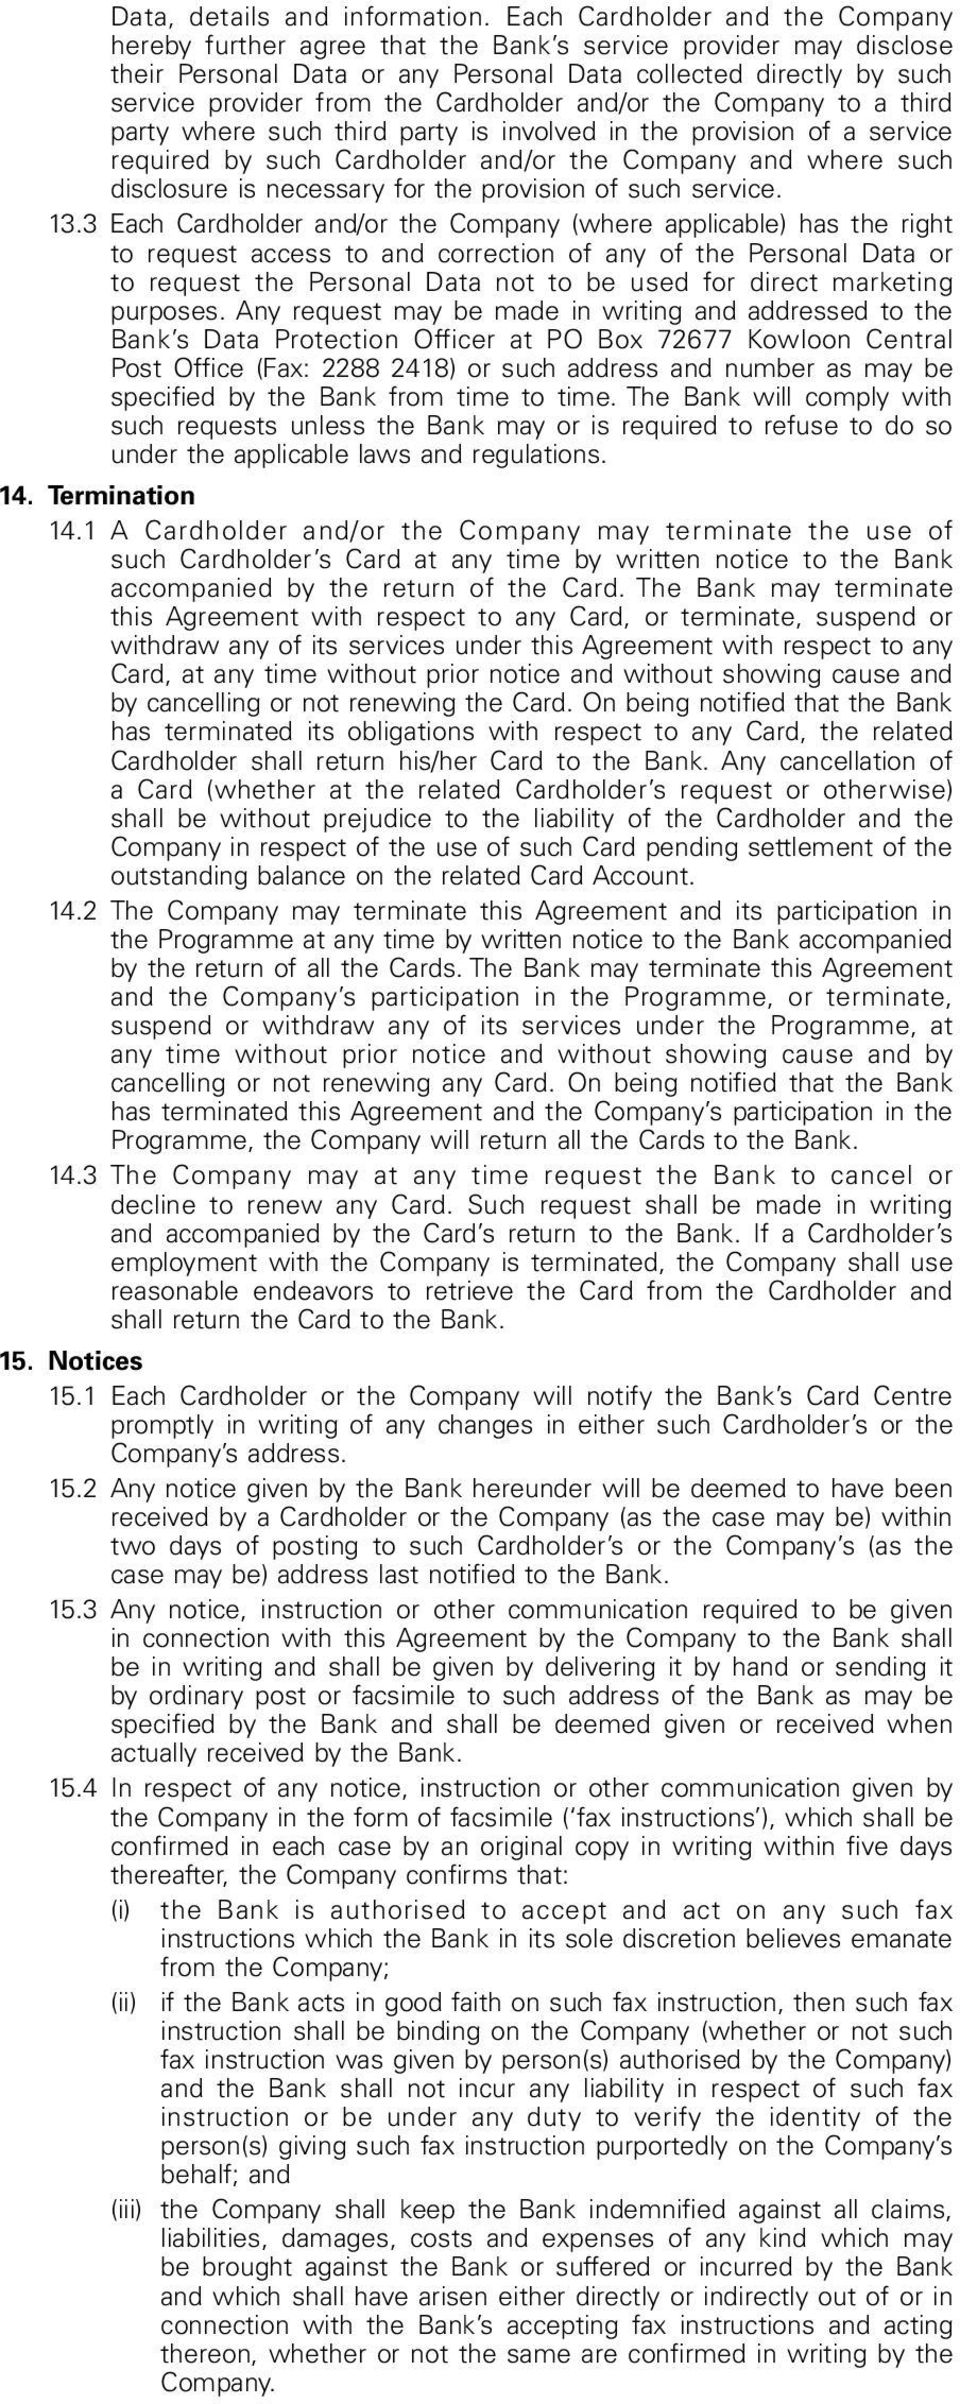 Cardholder and/or the Company to a third party where such third party is involved in the provision of a service required by such Cardholder and/or the Company and where such disclosure is necessary